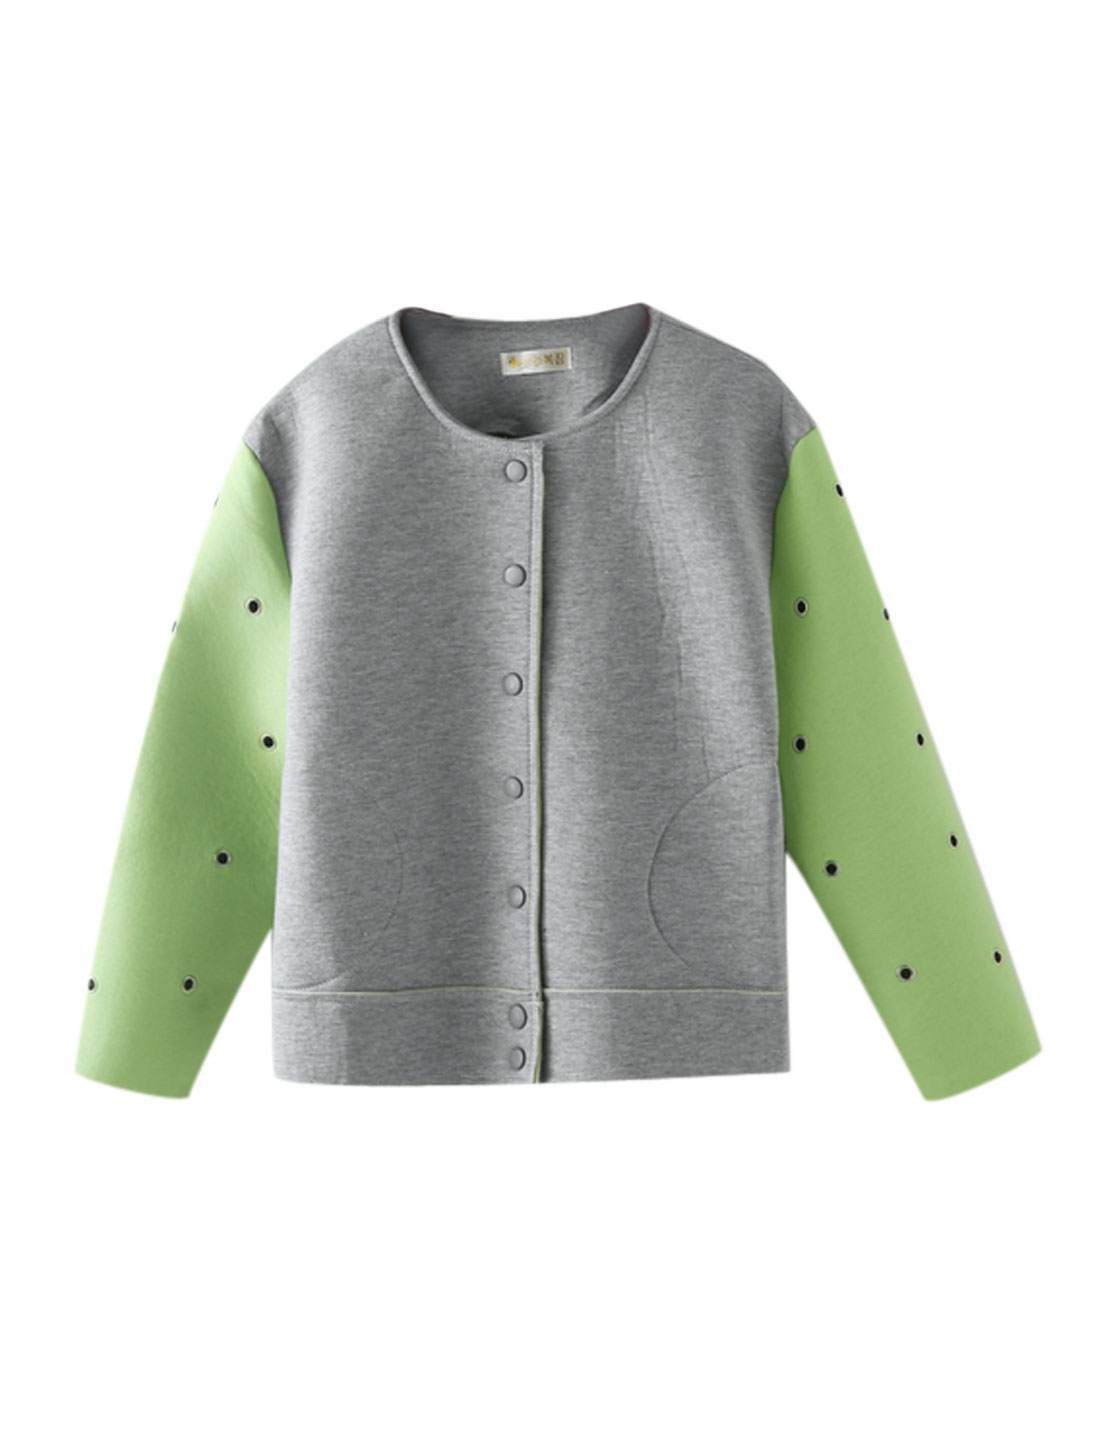 Women Single Breasted Metal Eyelets Design Jacket Light Green Light Gray M